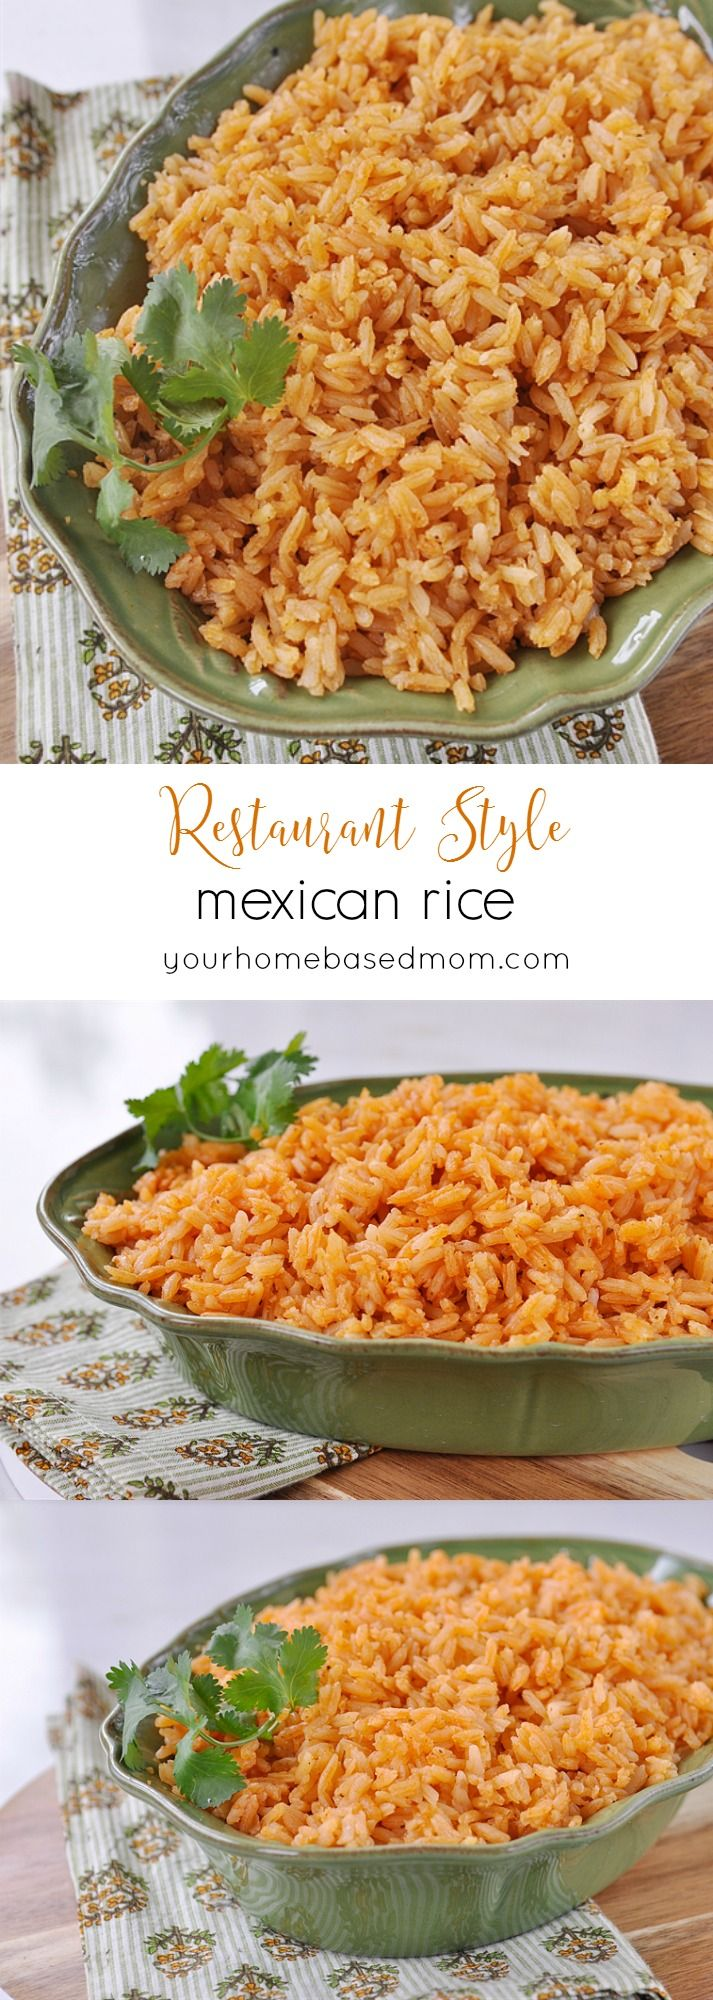 Restaurant Style Mexican Rice just added some garlic and onion powder